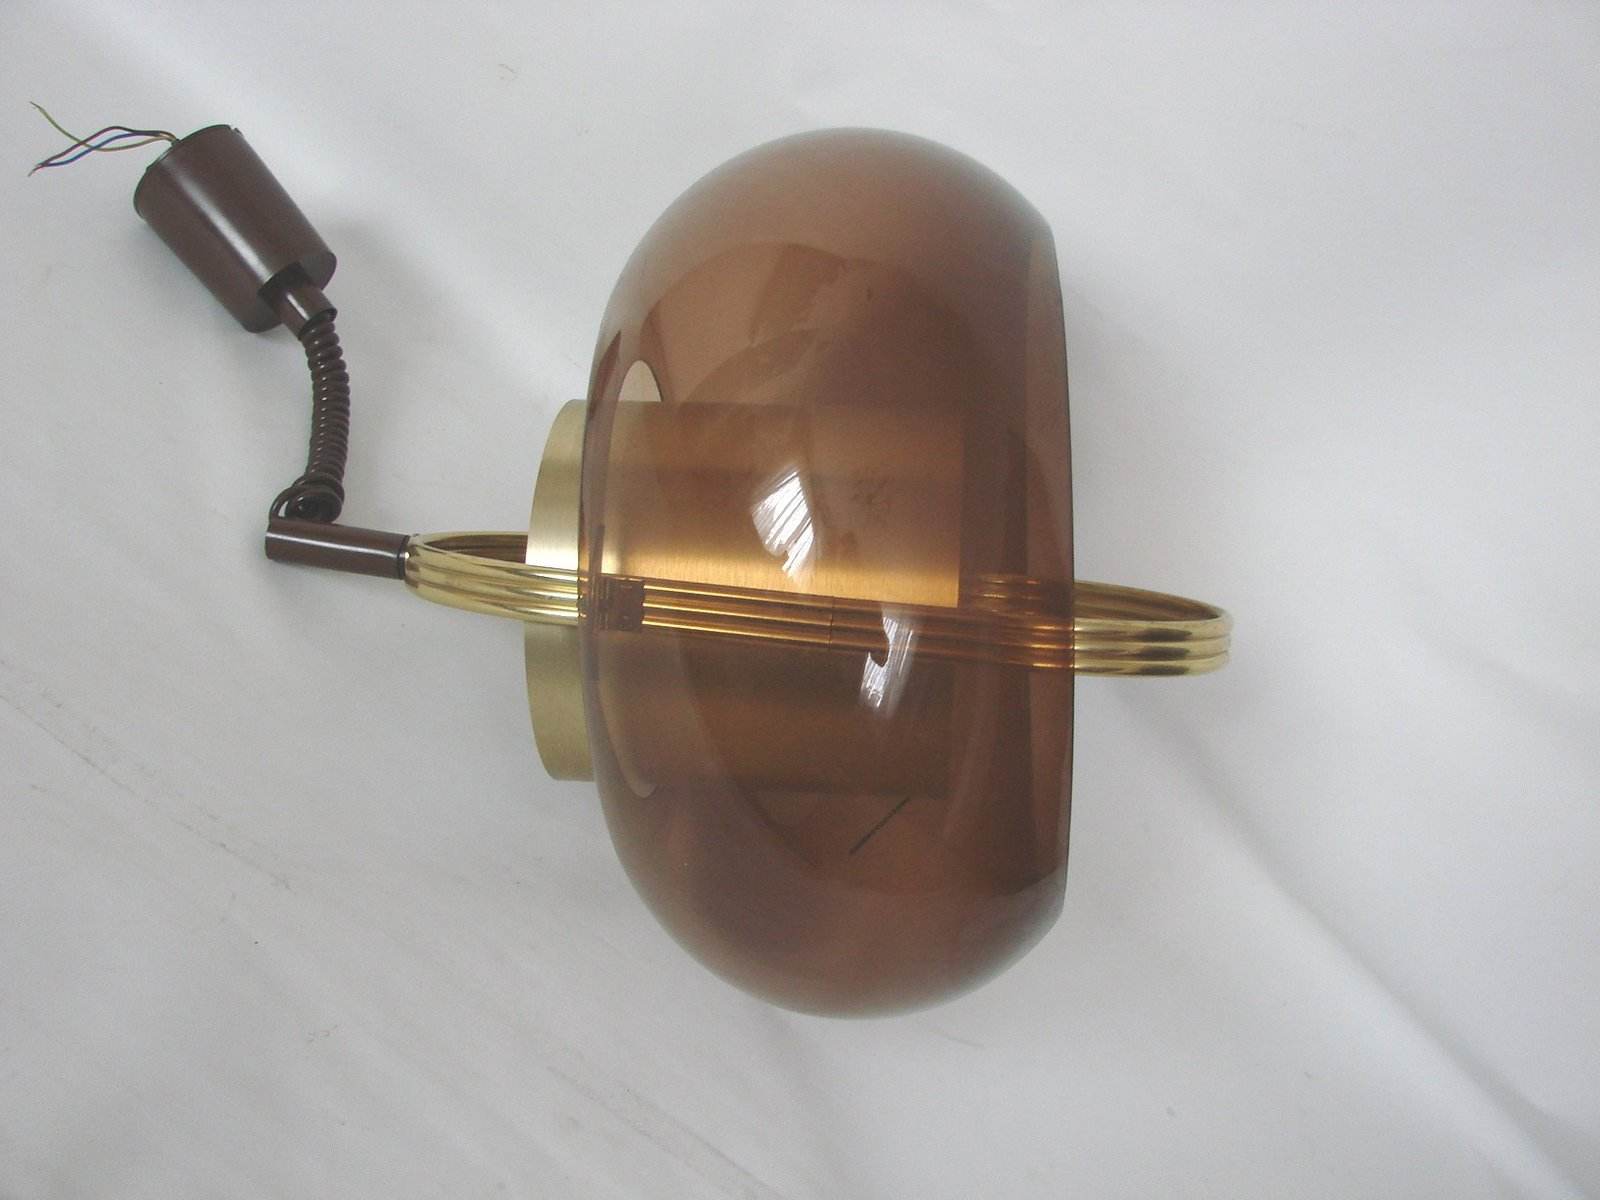 Model 317 Hanging Lamp from Temde, 1970s